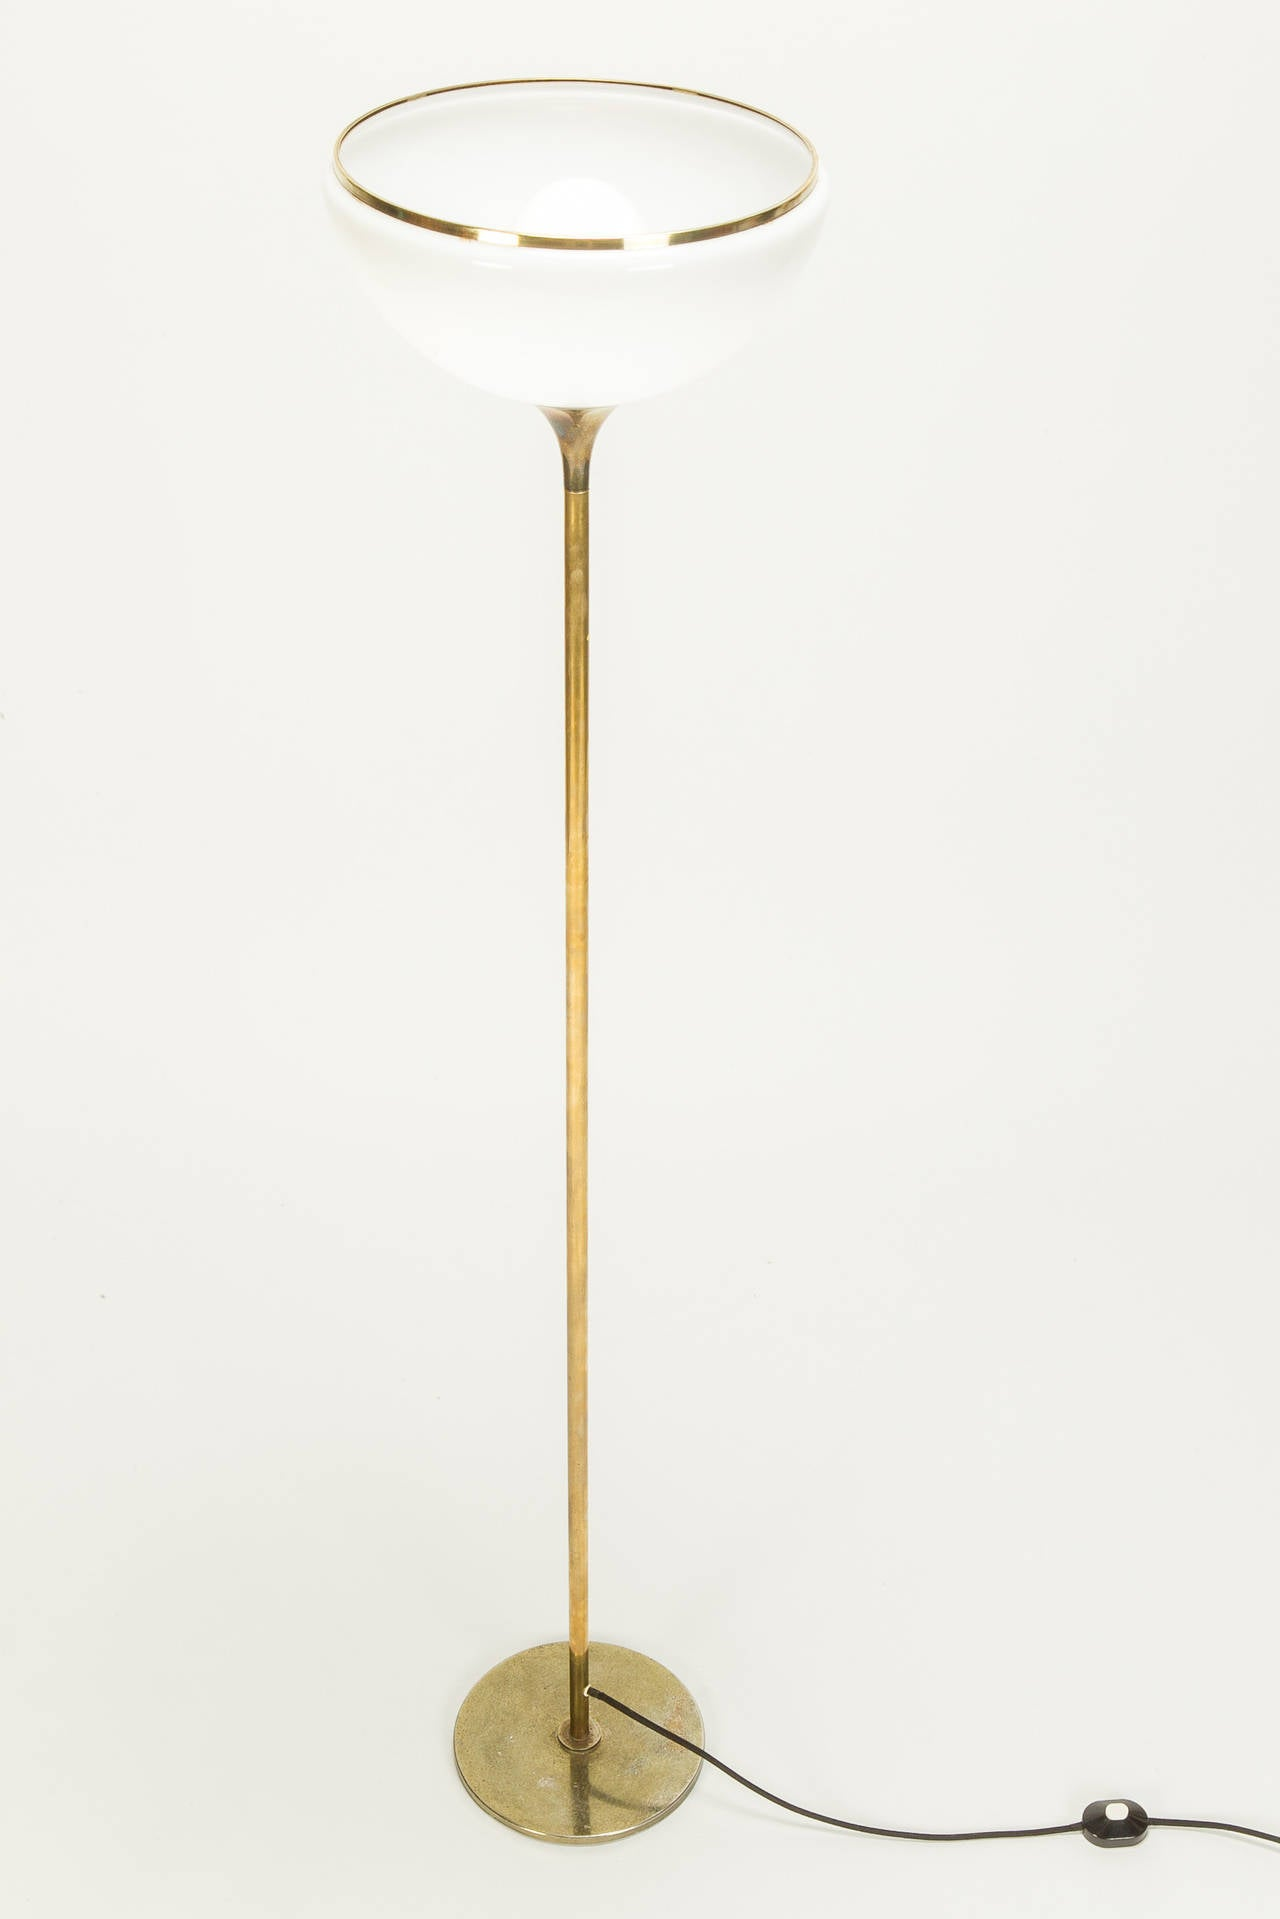 Italian Brass Tulip Floor Lamp By Reggiani 70s At 1stdibs